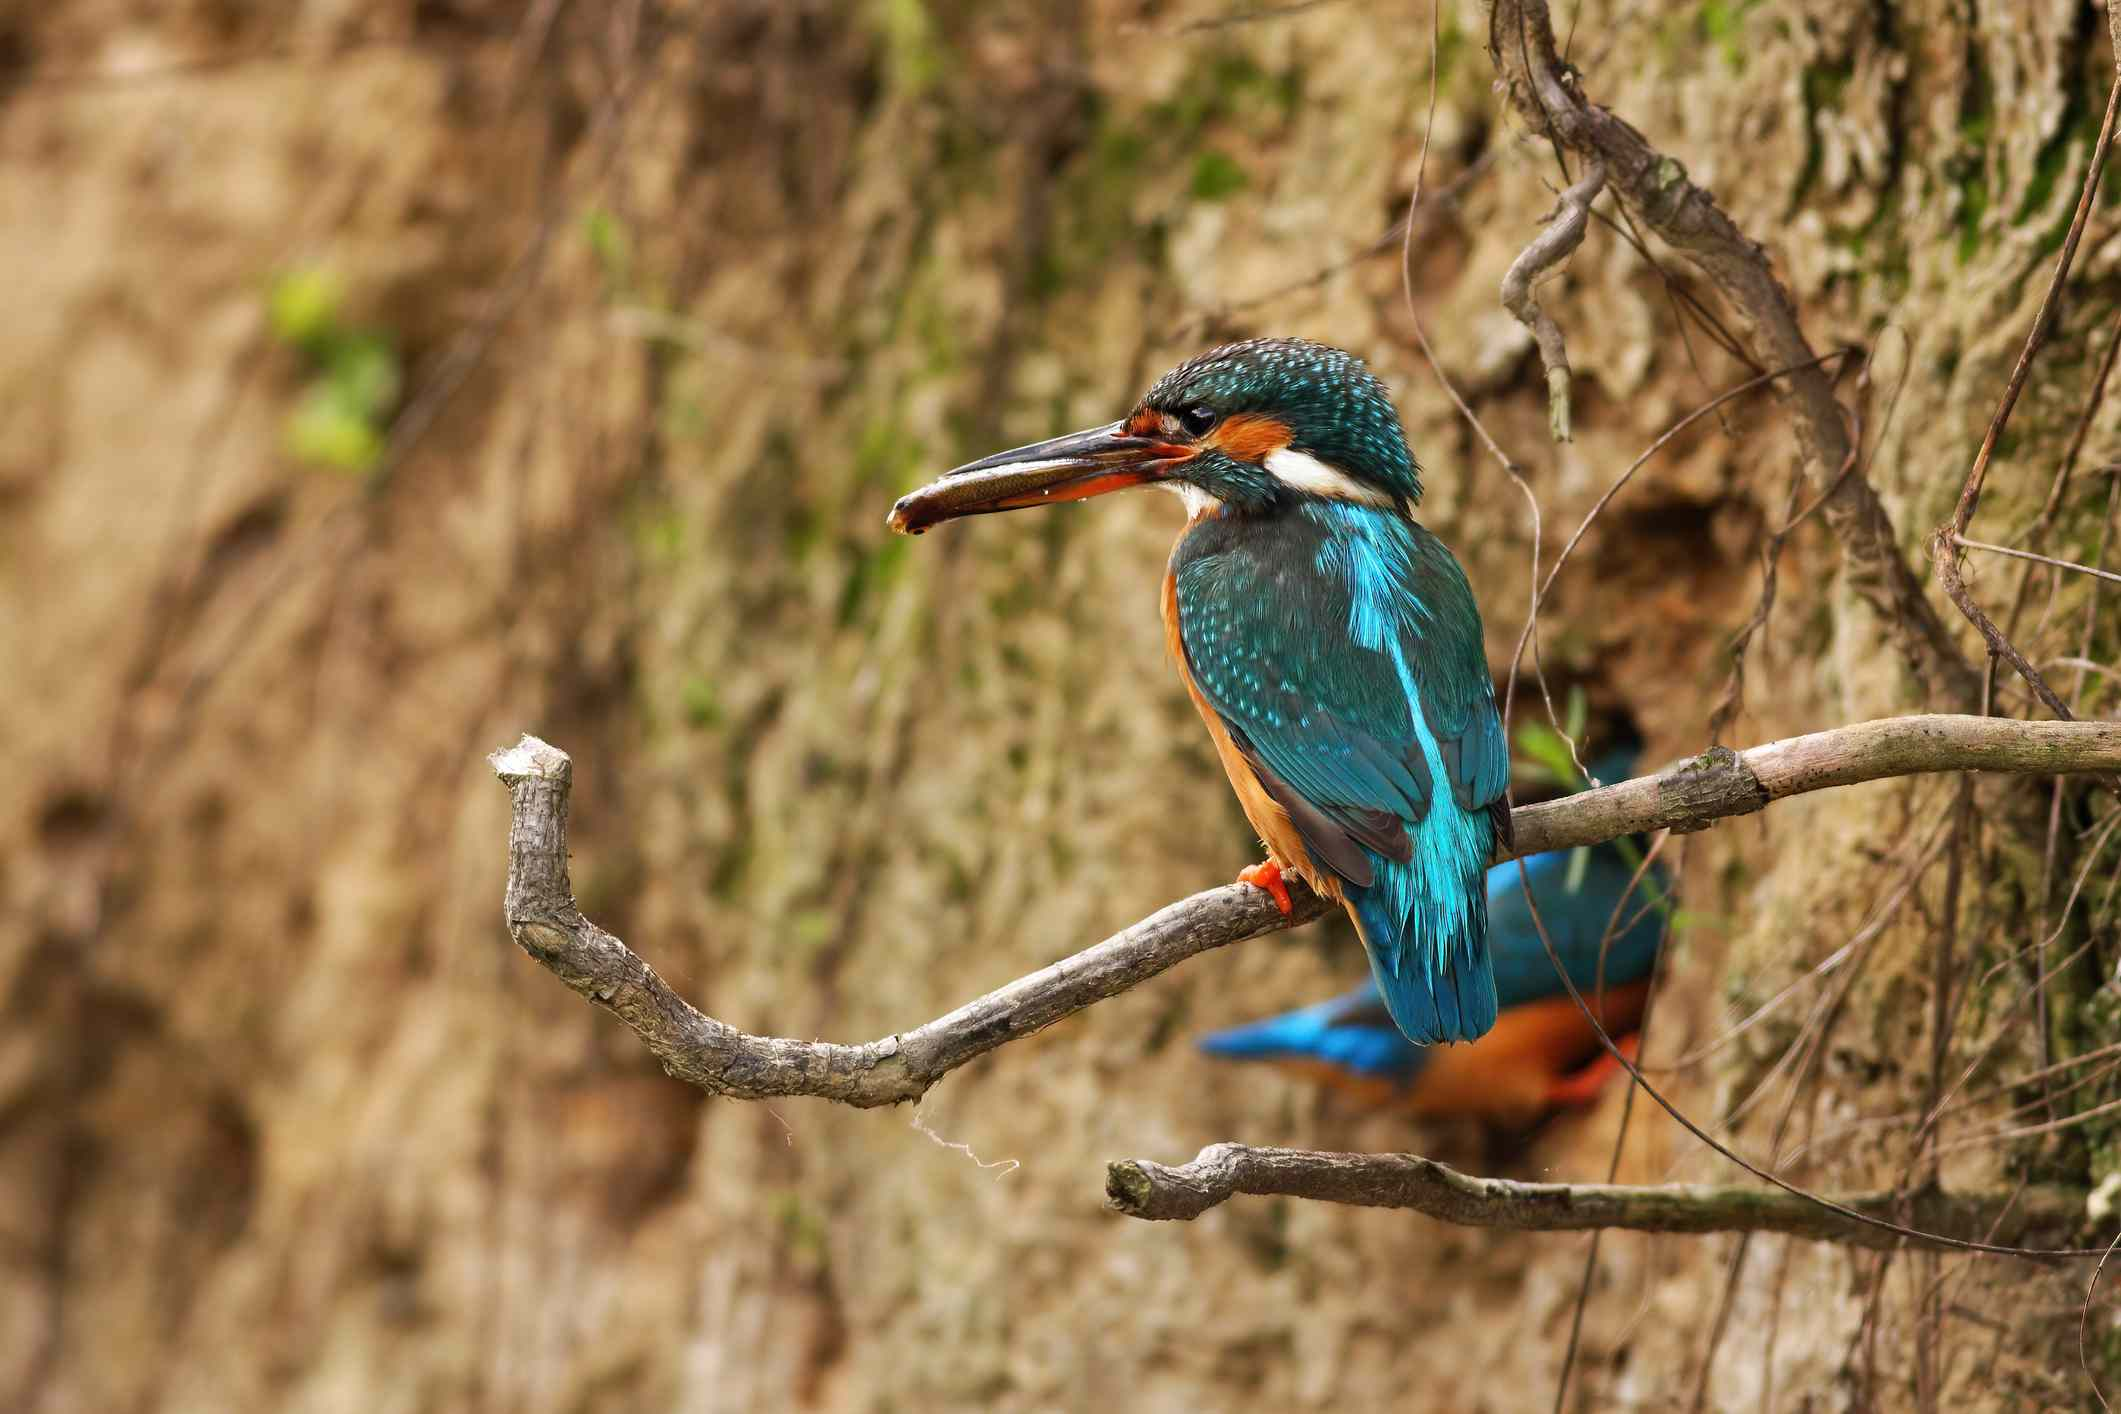 Pair of common kingfisher in breeding season digging a den in riverbank